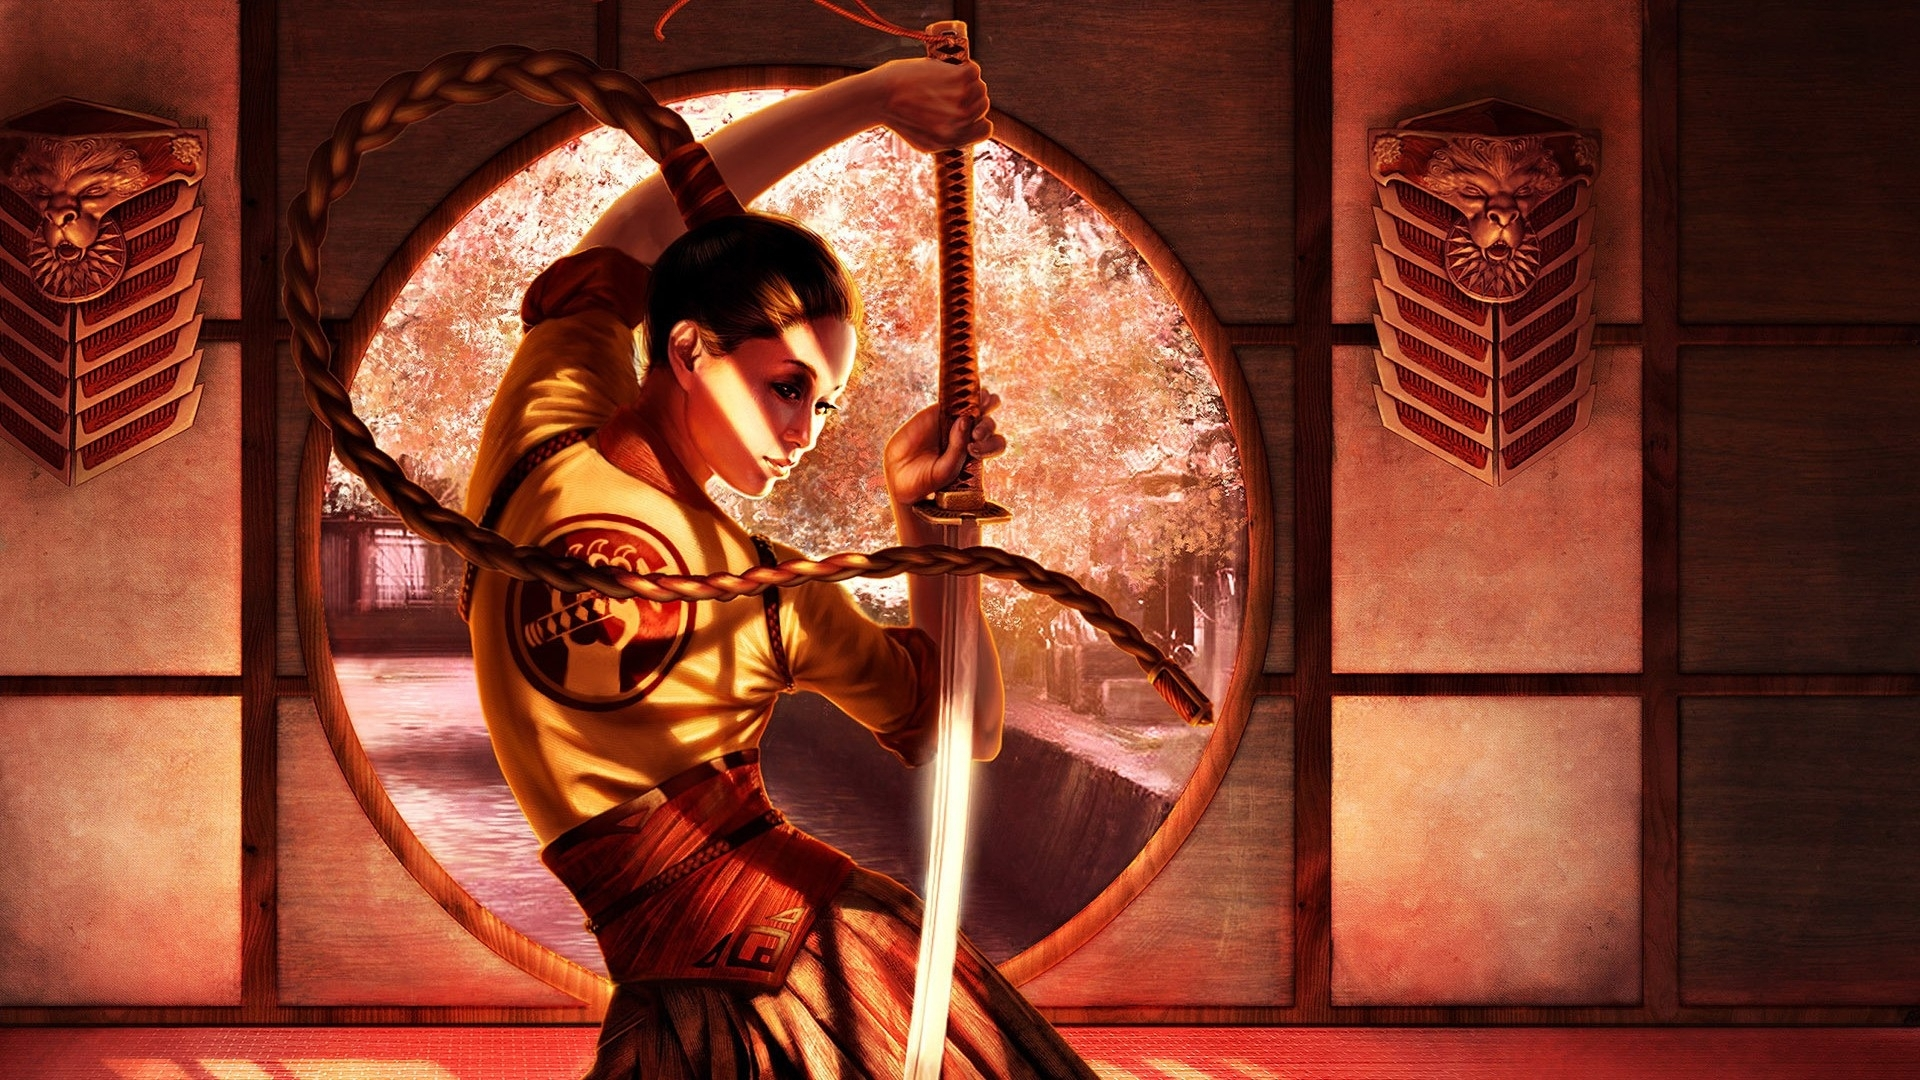 Steve Argyle Fantasy Art Women Samurai Asians Swords 1920X1080 Wallpaper Hot Girls -4599